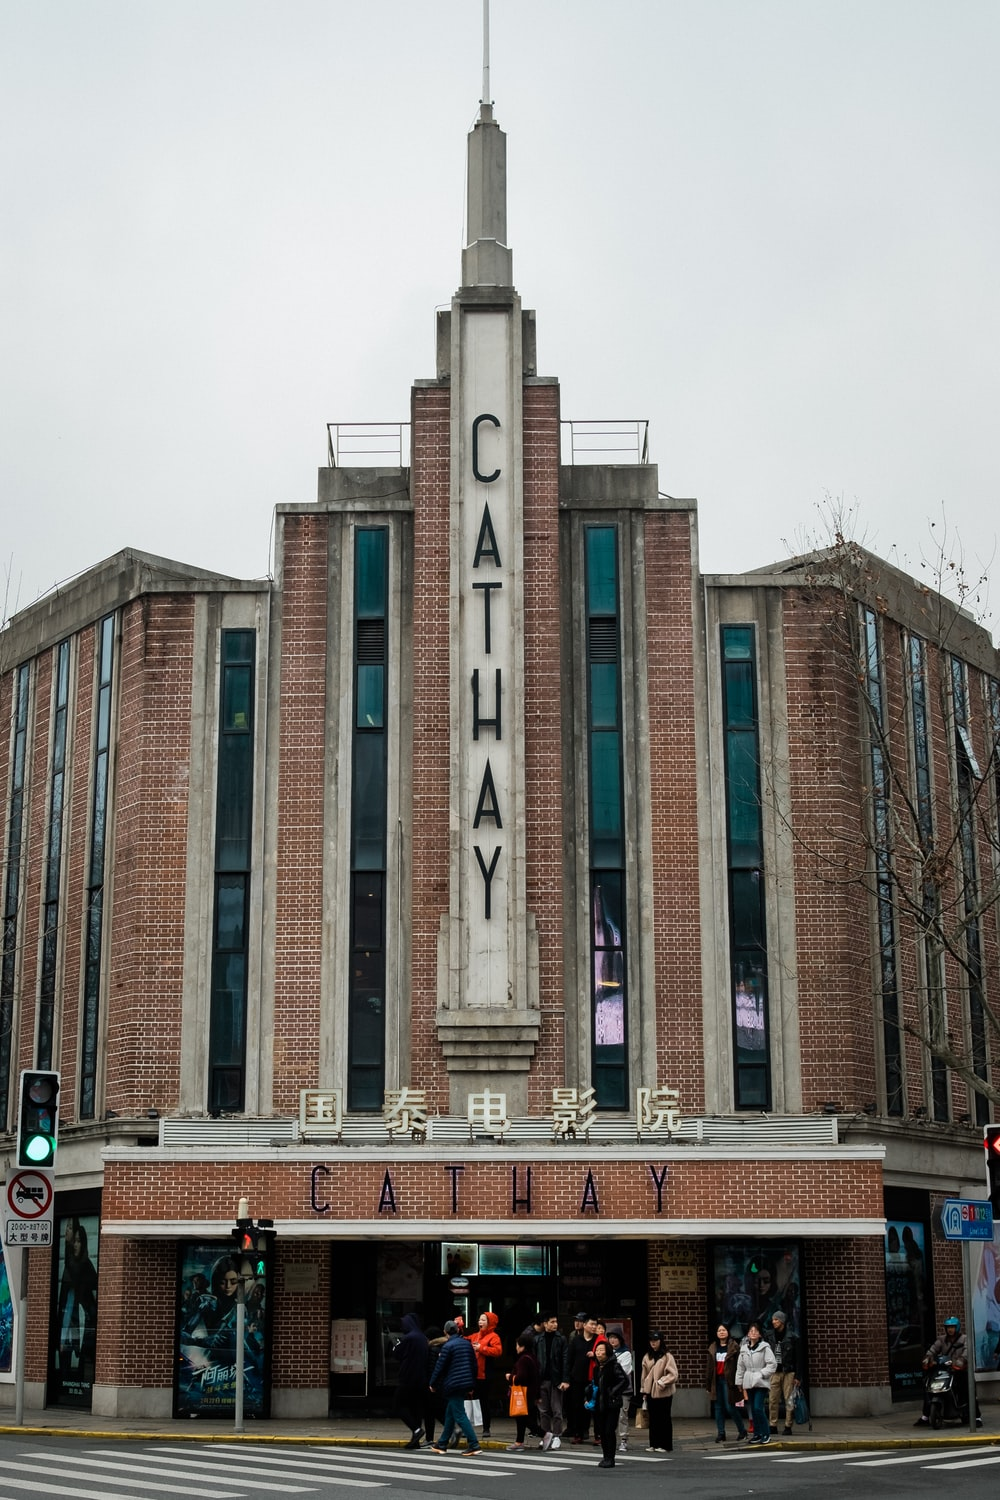 Cathay cathedral building at daytime